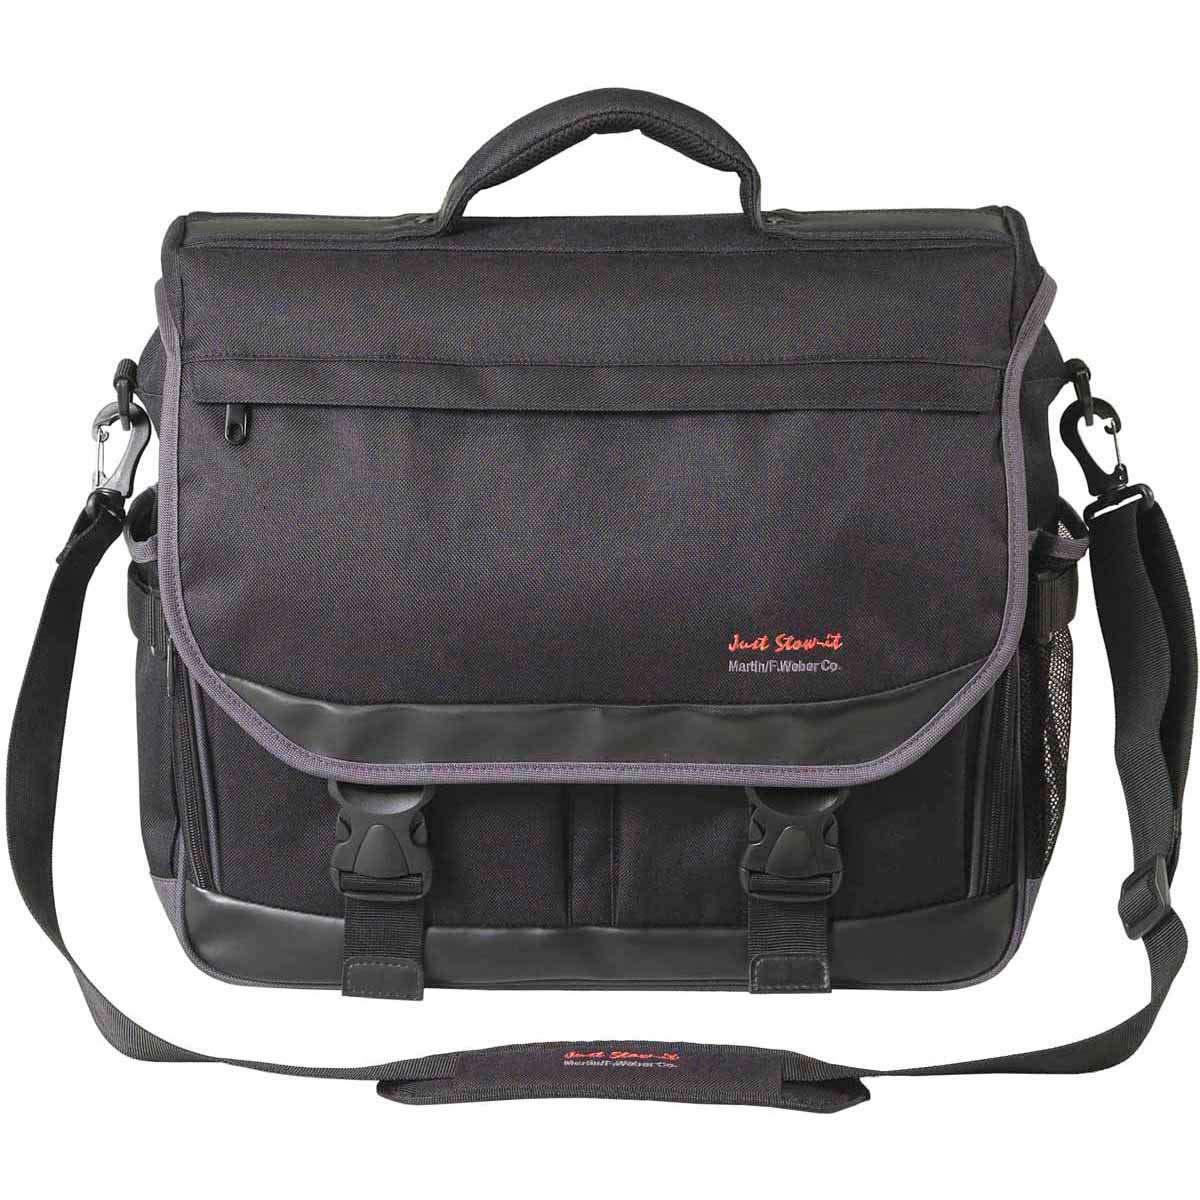 "Just Stow-It Ultimate Messenger Bag for The Arts, 16"" L x 18"" W x 5.25"" L, Black"